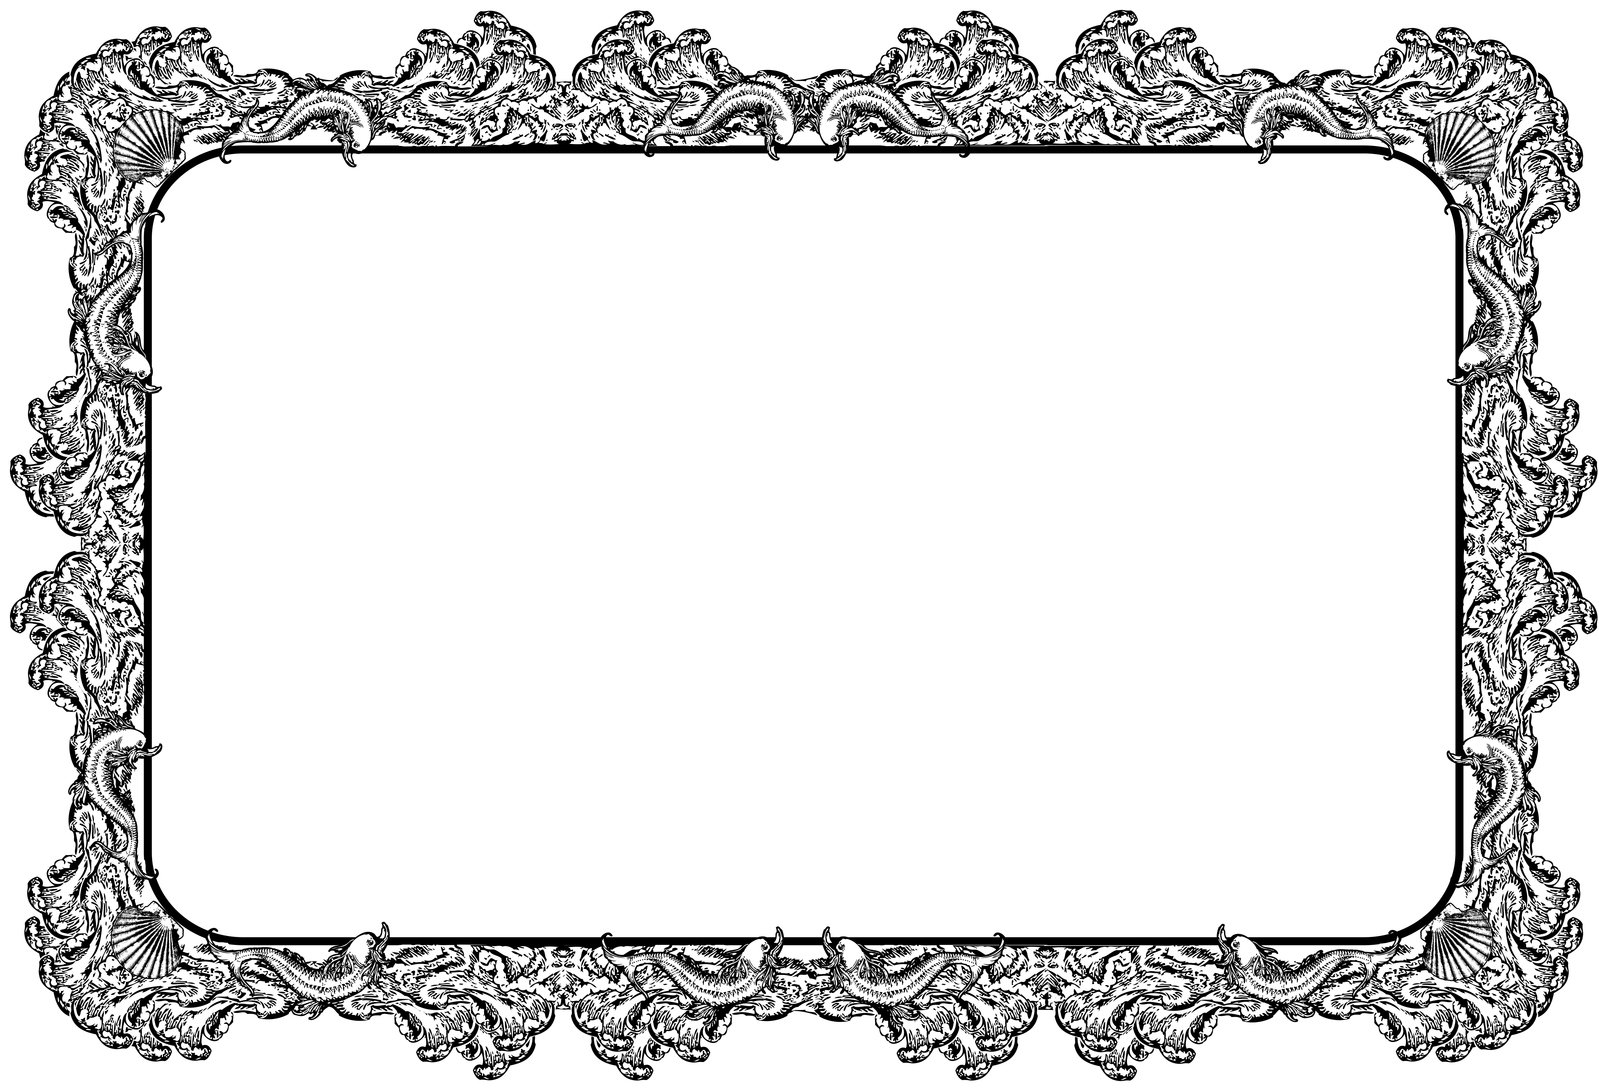 Cadre à Colorier Imprimer Free Decorative Retro Style Border Or Frame Stock Photo